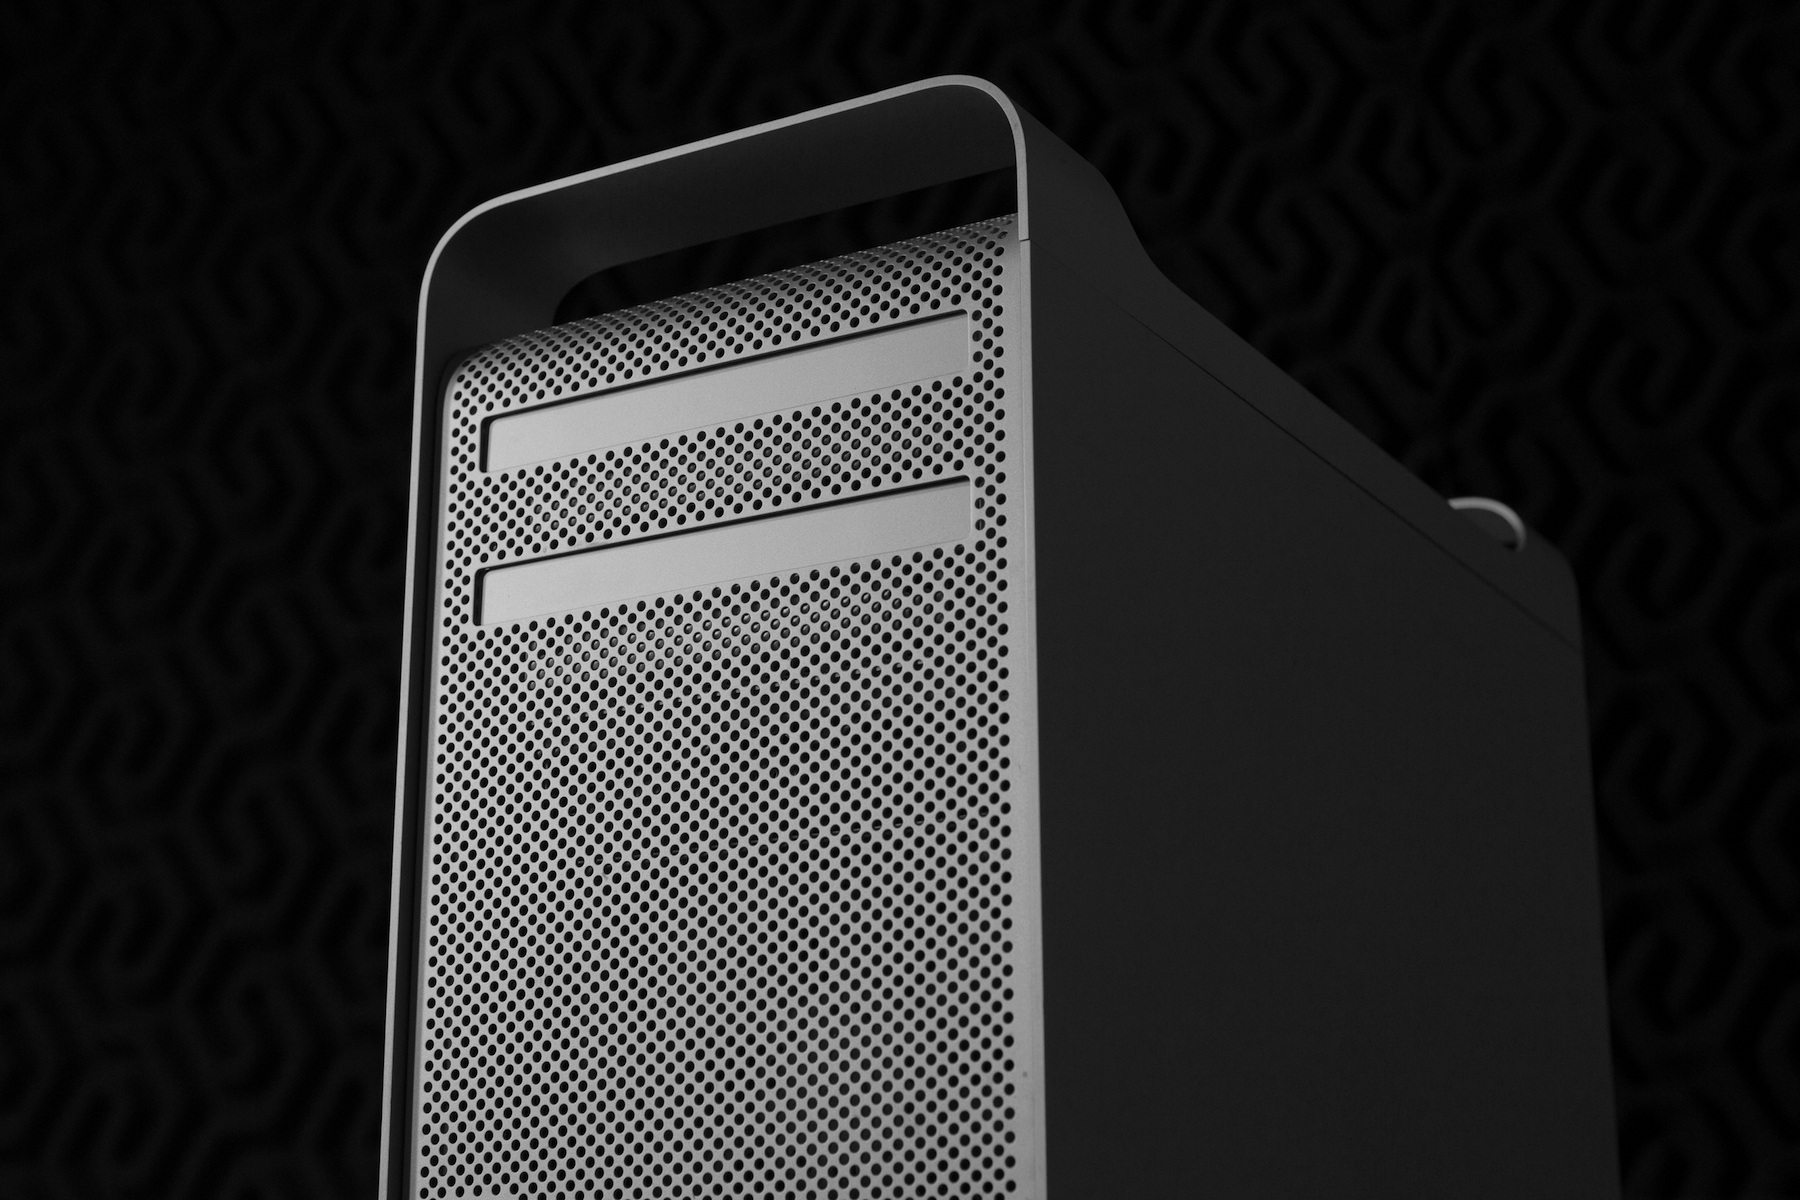 The Cheese Grater Mac Pro – 512 Pixels